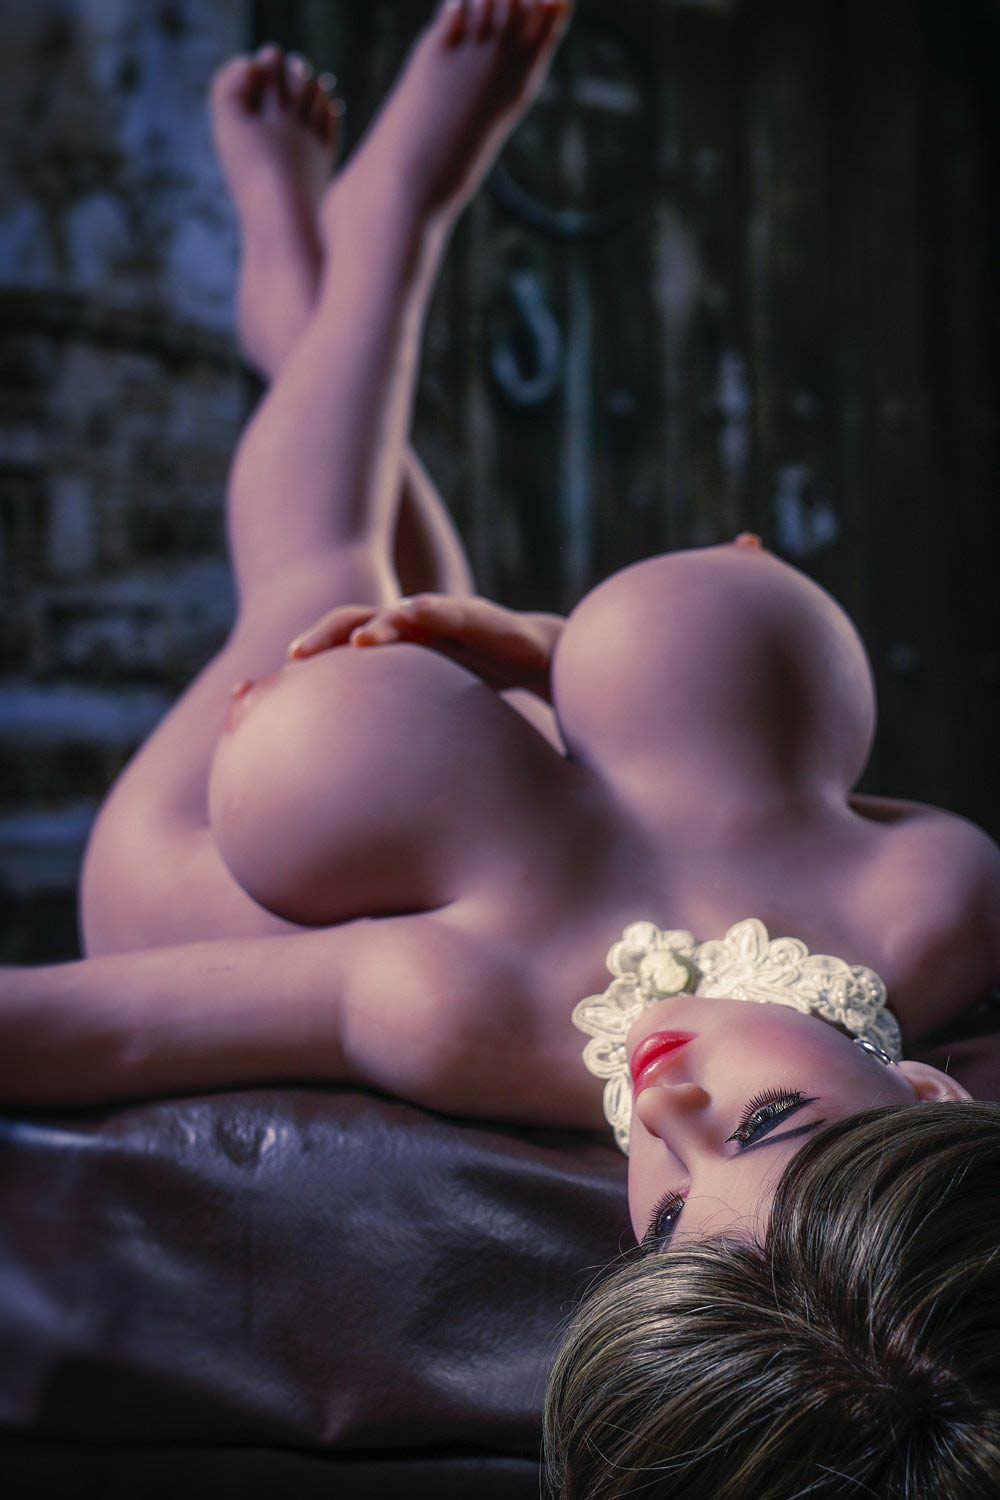 Big breasted sex doll with legs raised